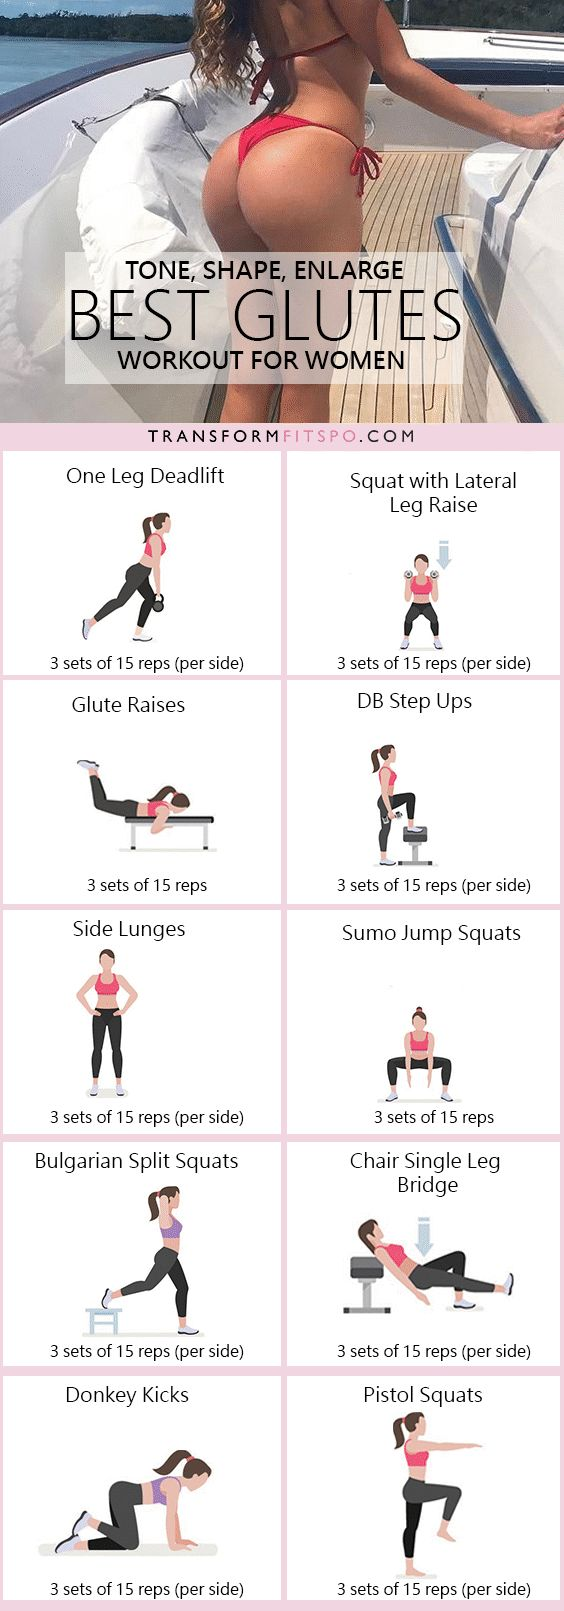 Repin and share if you enjoyed this killer bum lifting workout! Follow Personal Trainer SuperDFitness at Pinterest.com/SuperDFitness Now!